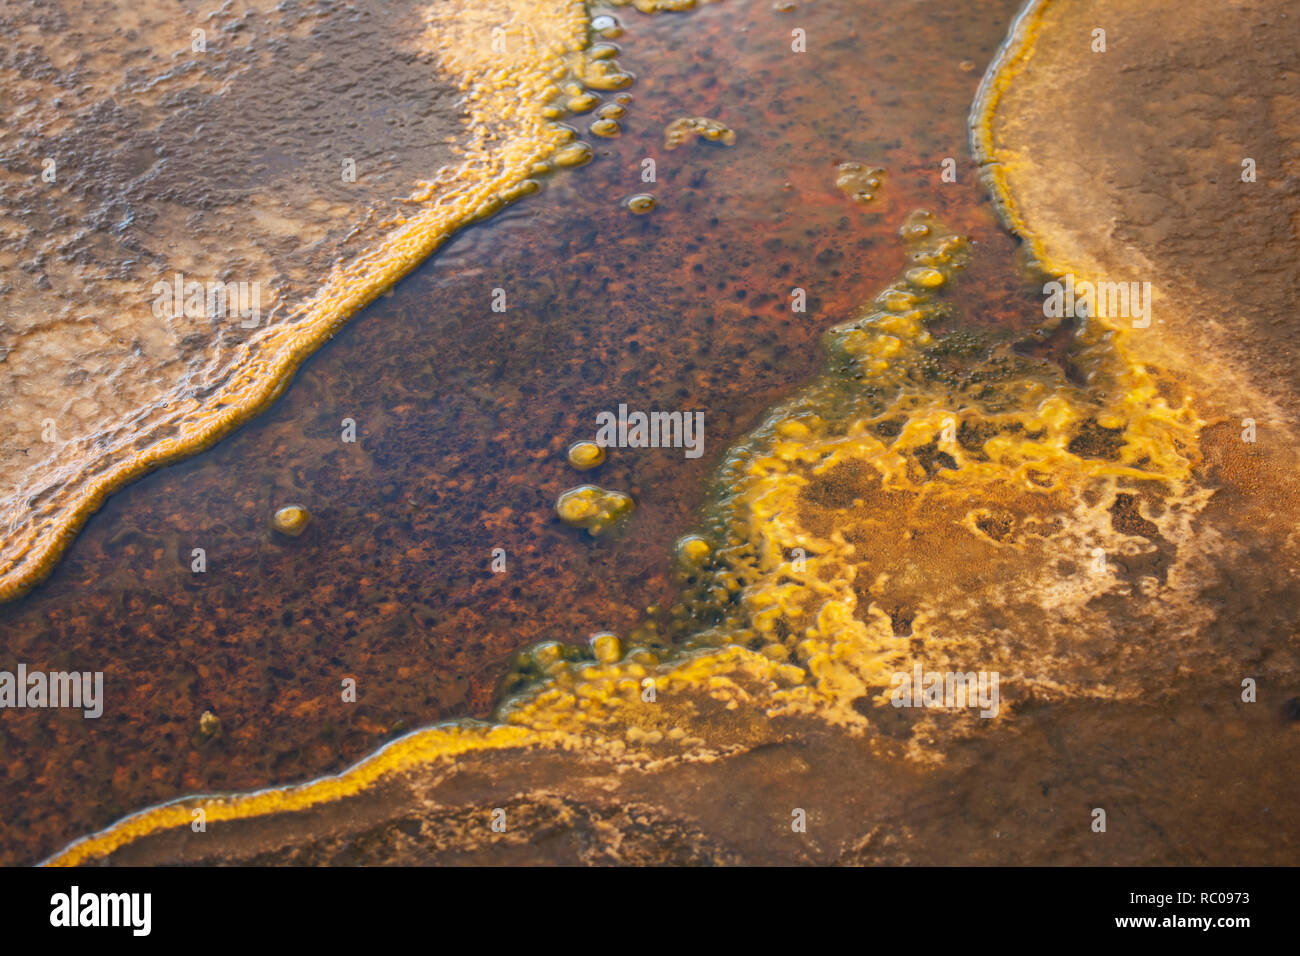 Thermal bacteria mat in Yellowstone National Park, Wyoming, USA - Stock Image